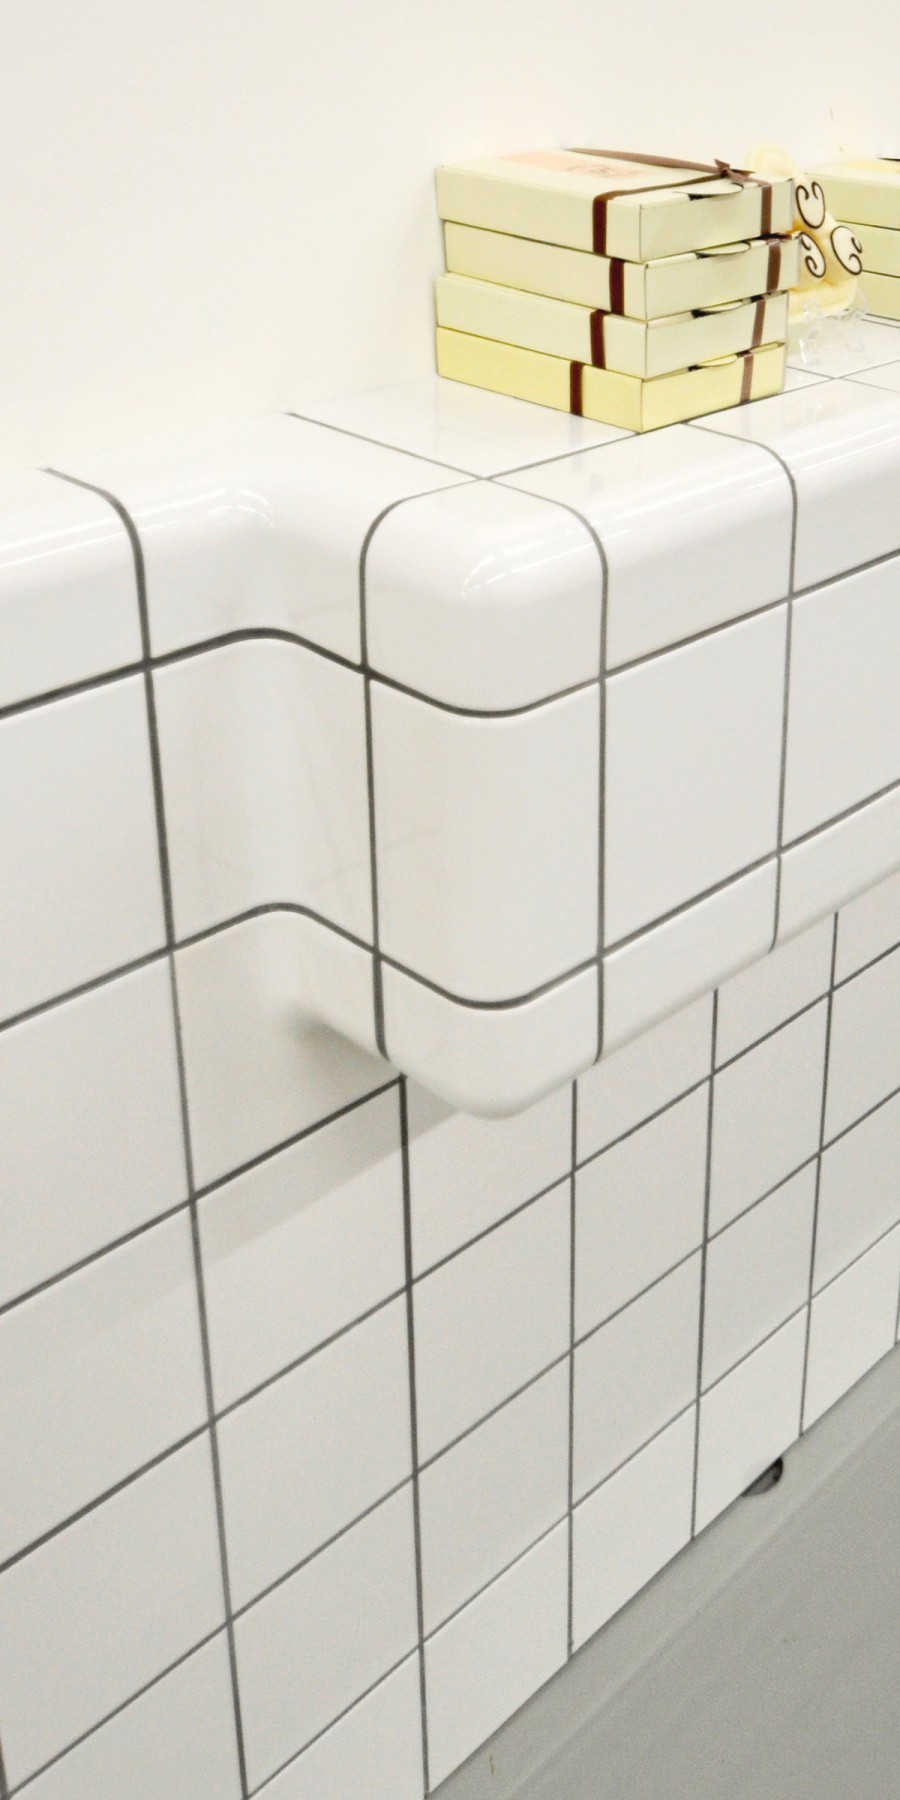 edge with rounded tiles, tiling with three-dimensional construction and functional tiles